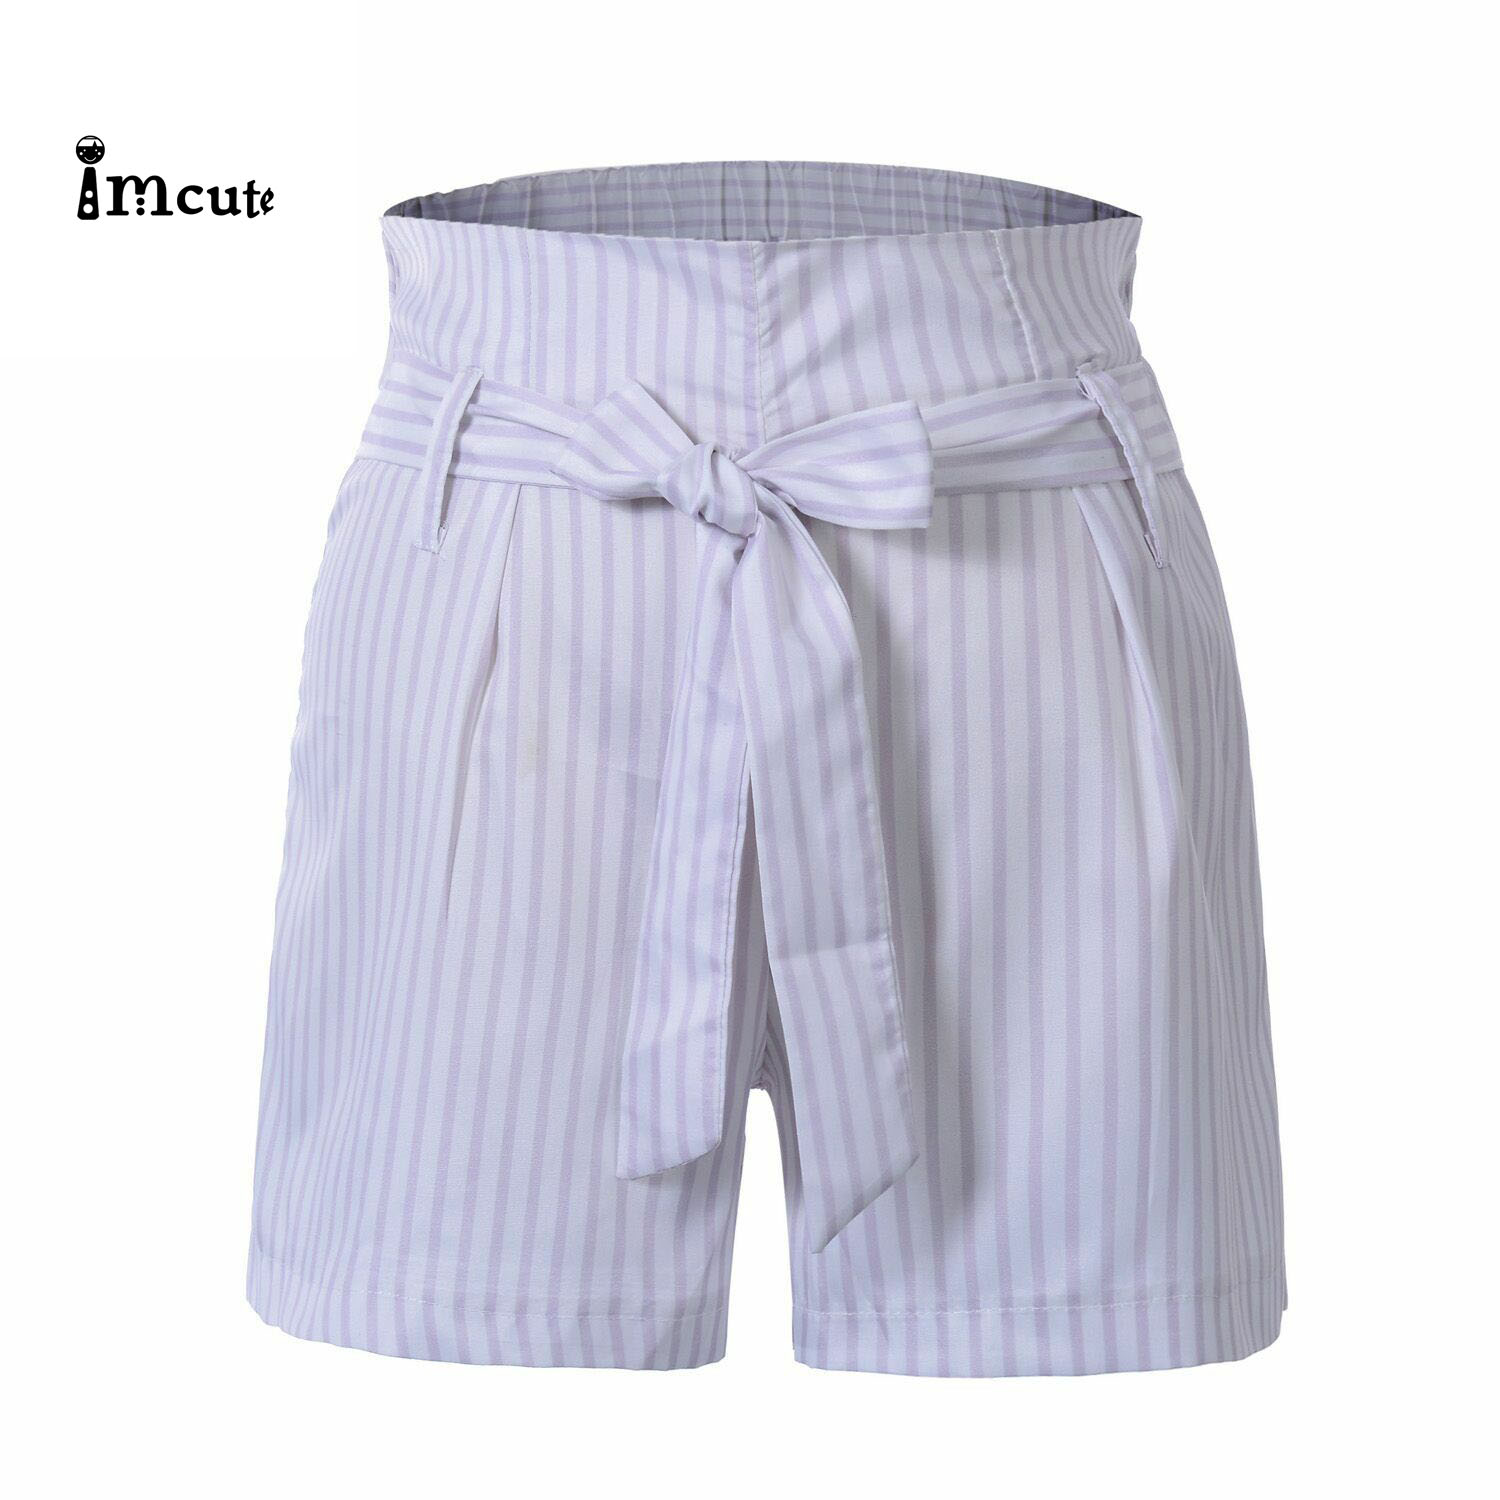 Women New Fashion Holiday Lace Up Bandage Ladies   Shorts   Hot Summer Casual Loose   Shorts   Bow Beach High Waist Striped   Short